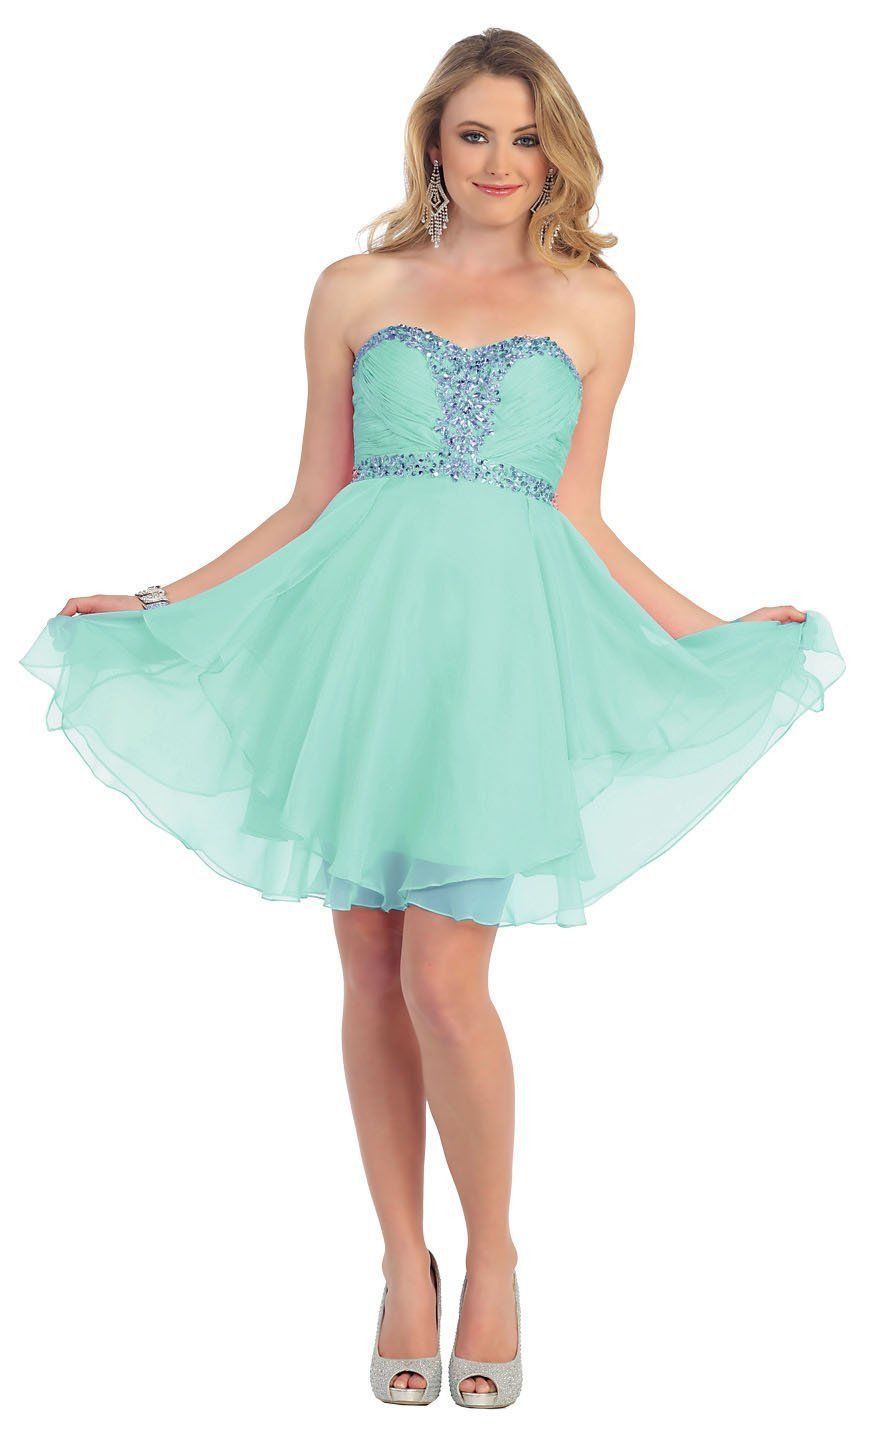 Bat Mitzvah Dresses - The Dress Outlet